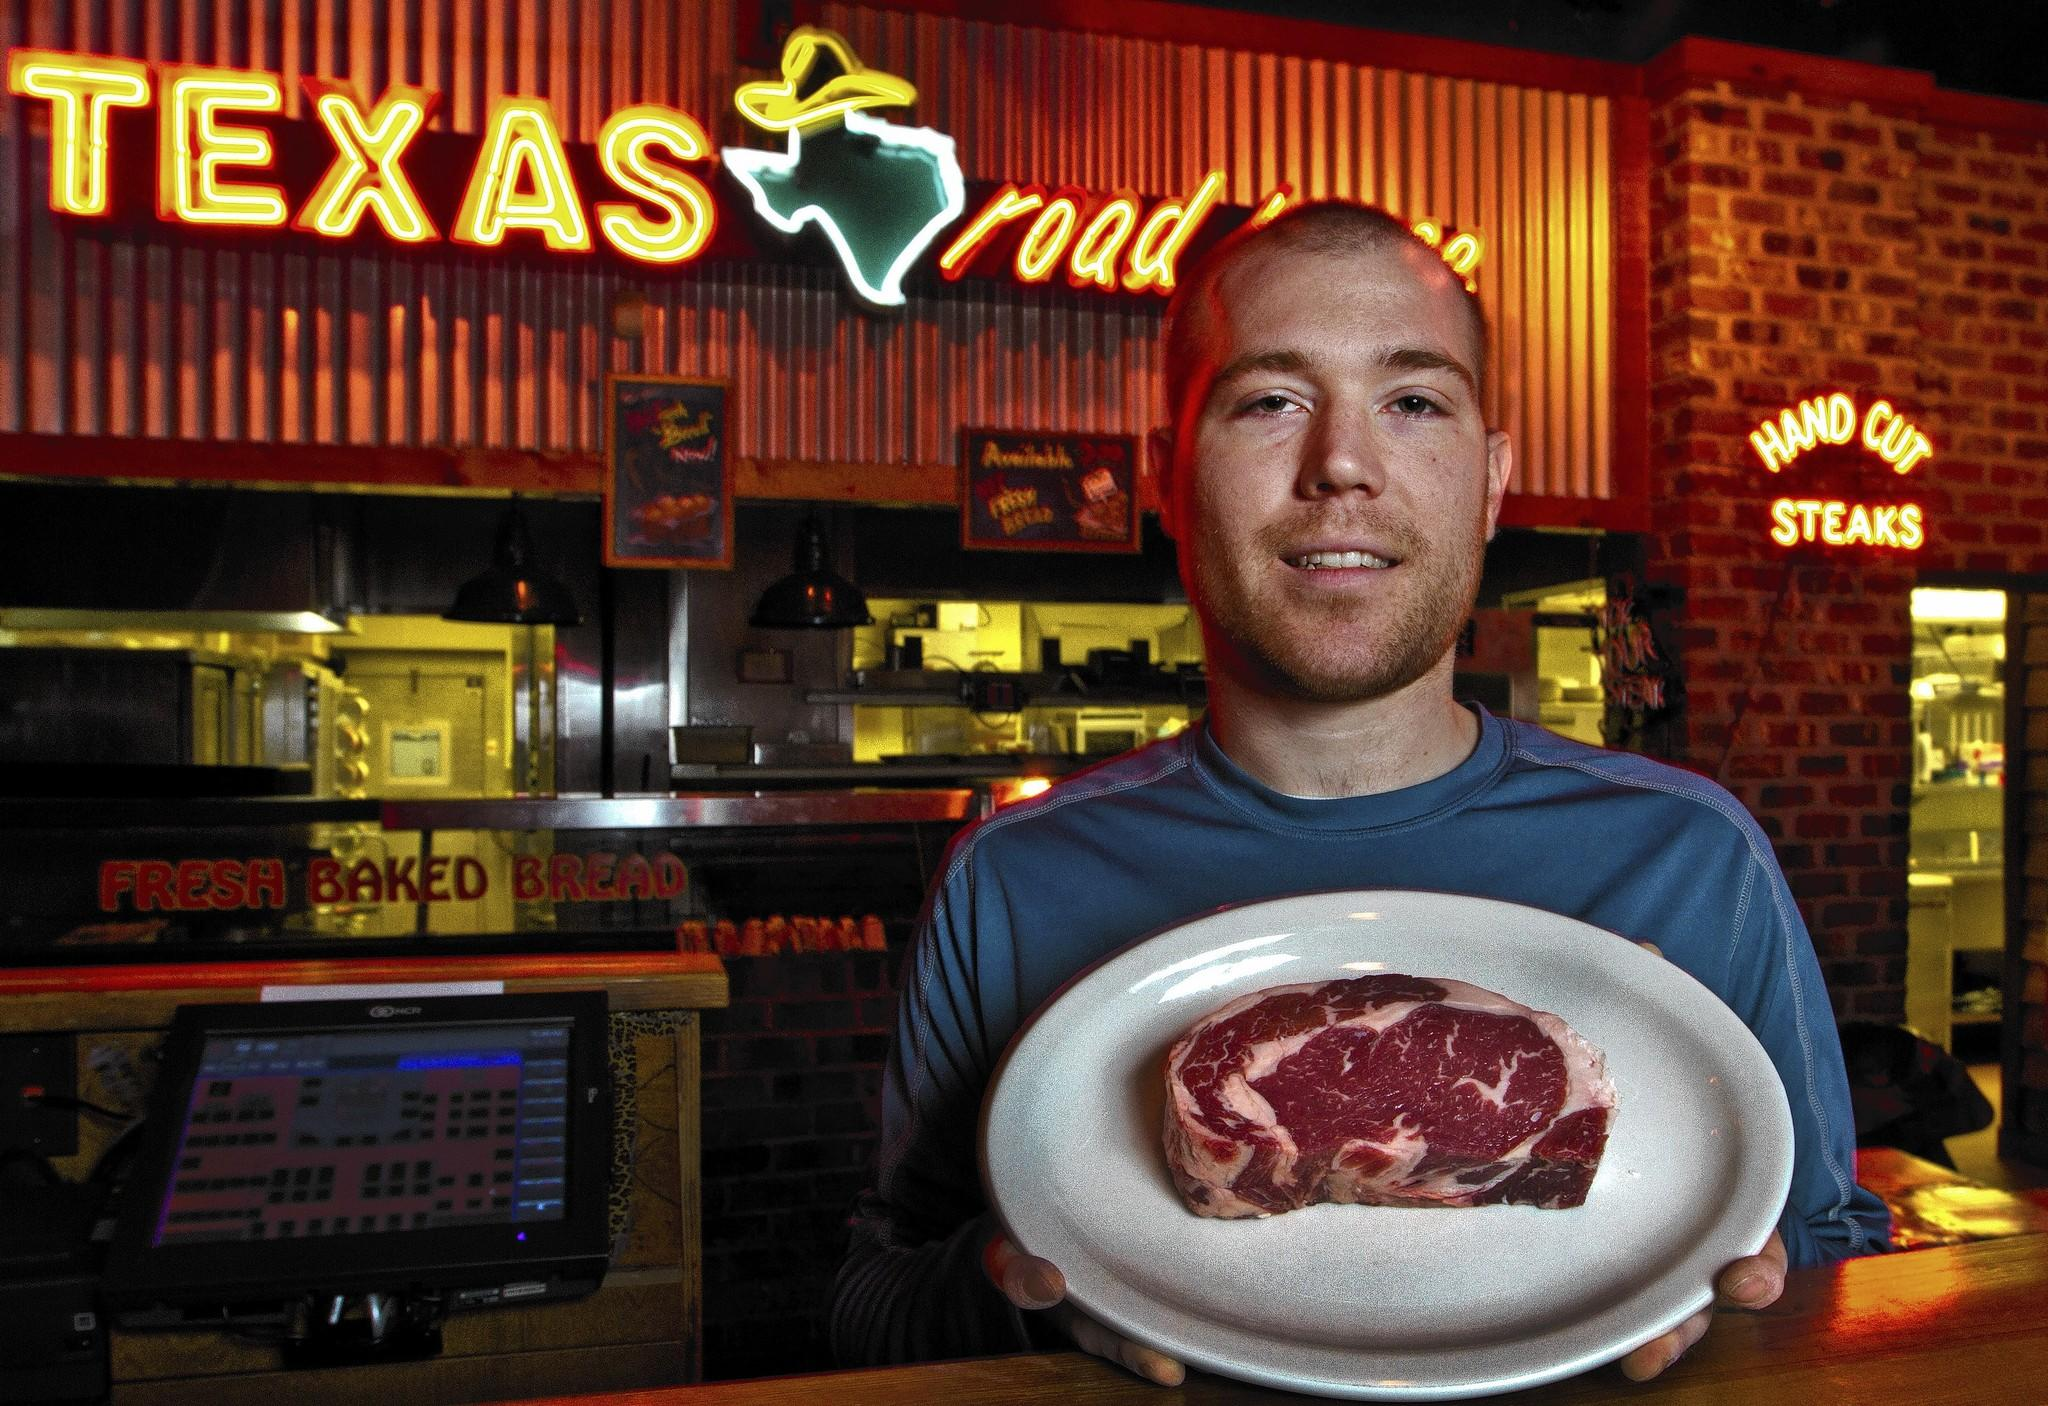 Adam Fraking cuts steaks for Texas Roadhouse and is competing in a national meat-cutting competition sponsored by the restaurant chain. He won the state level and will travel to Florida Feb. 24 to compete on the national level. Adam Fraking cut some Ribeye steaks this morning for Texas Roadhouse to use today.